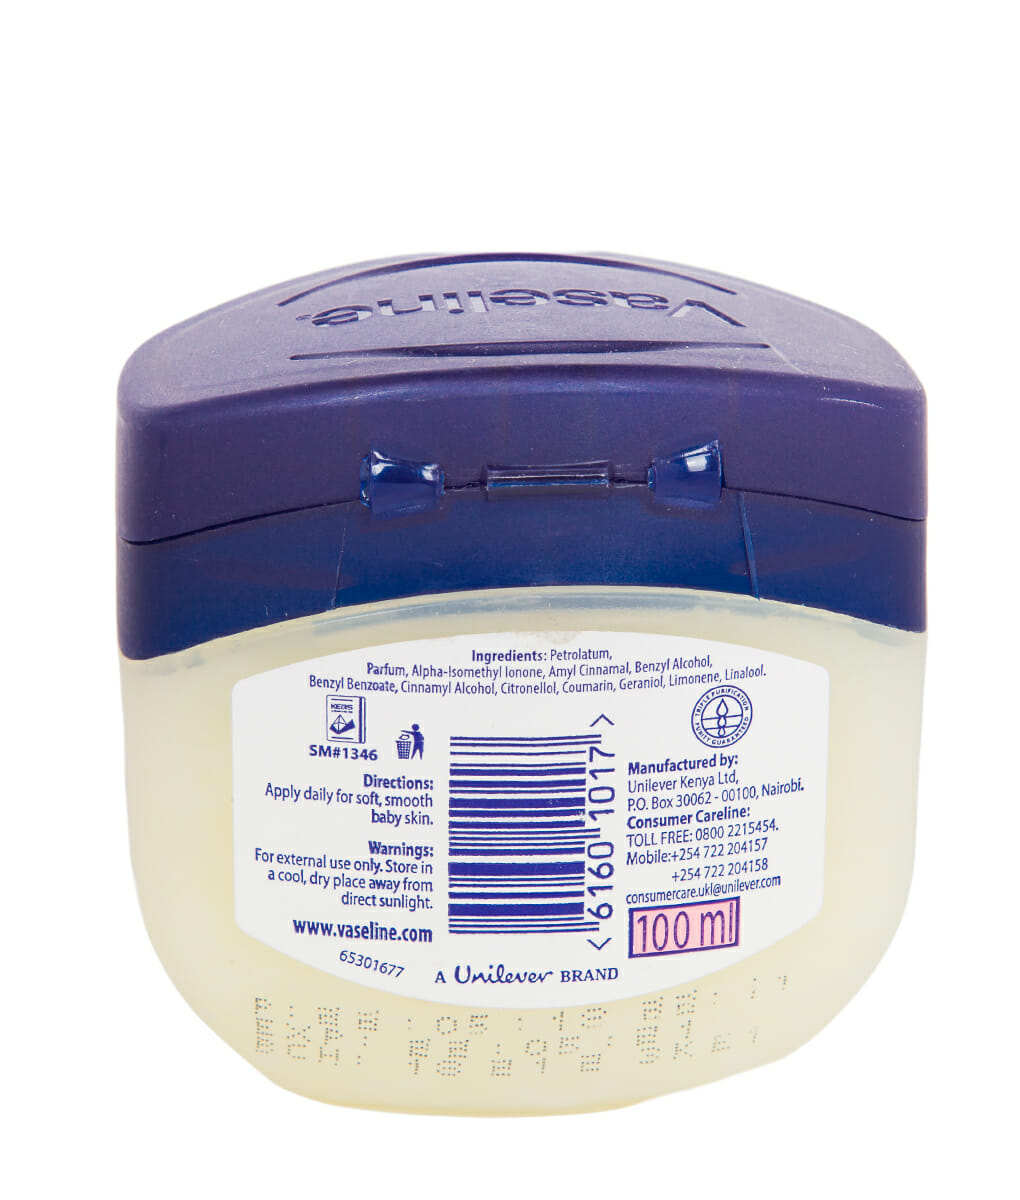 Vaseline Blue Seal Baby Soft Petroleum Jelly 100ml